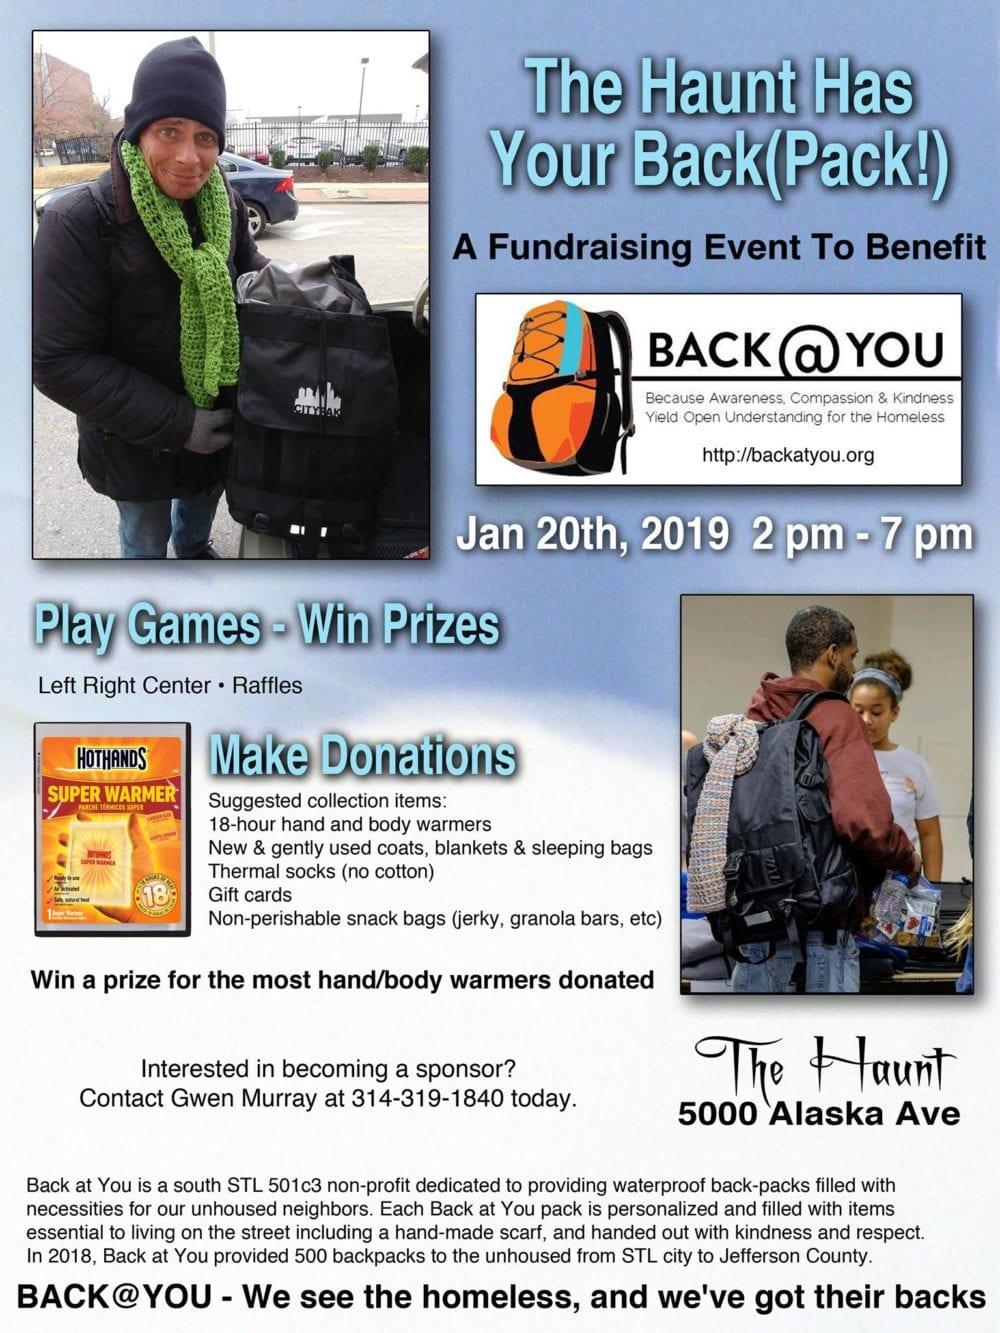 The Haunt Has Your Back(Pack): A fundraiser for Back@You